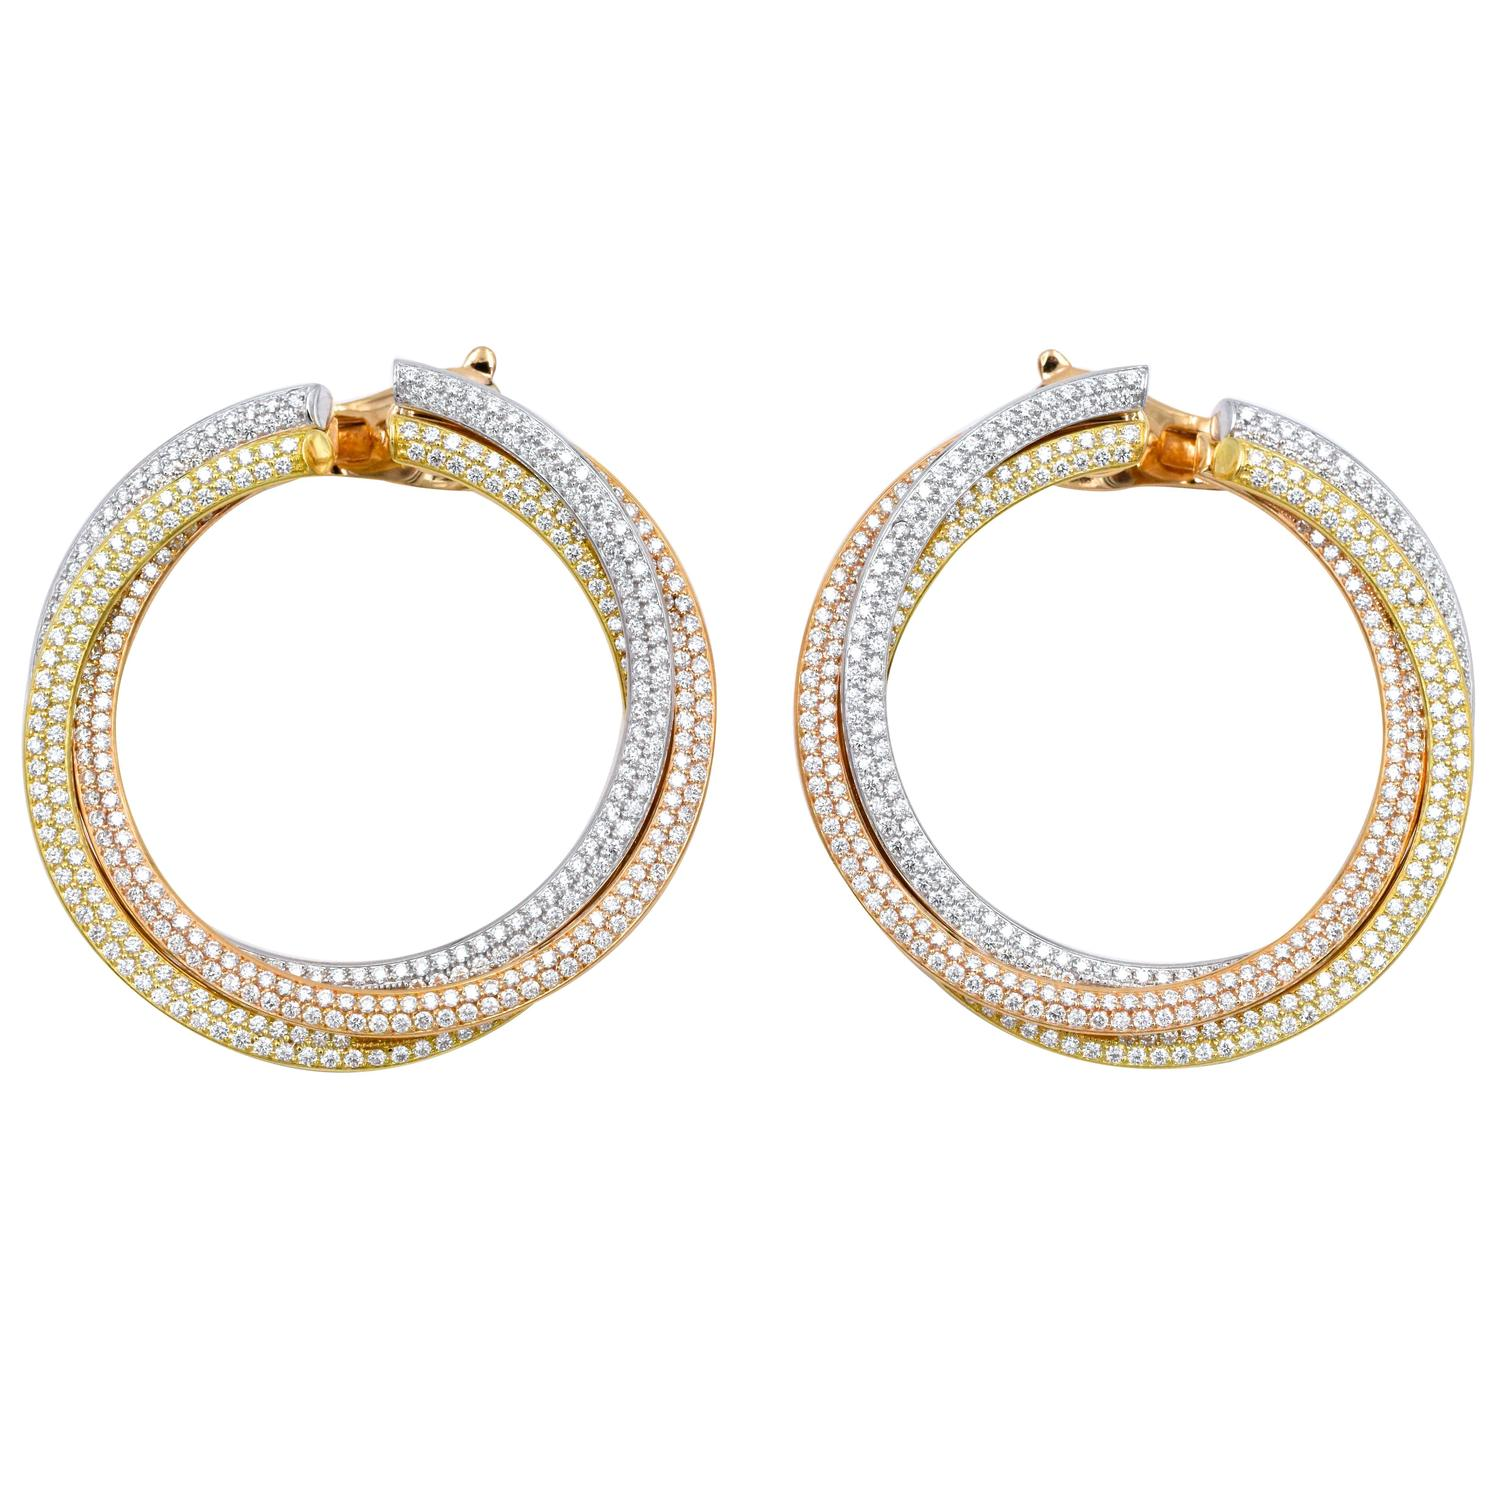 Cartier More Earrings 50 For Sale at 1stdibs